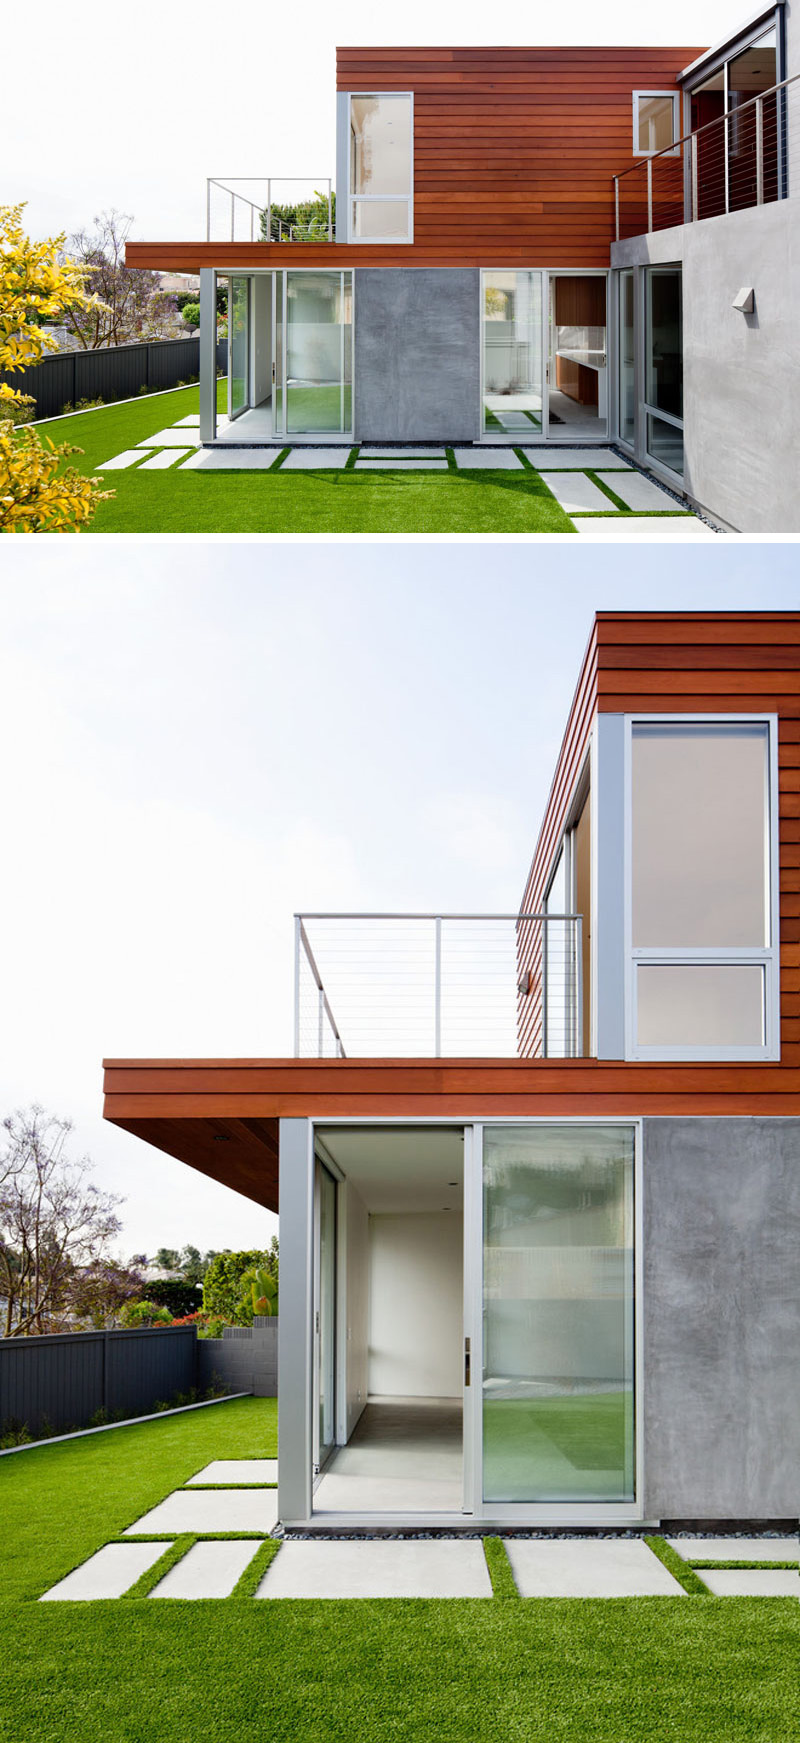 Concrete pavers go around the back of this modern house, connecting the various spaces and creating a manicured landscape.